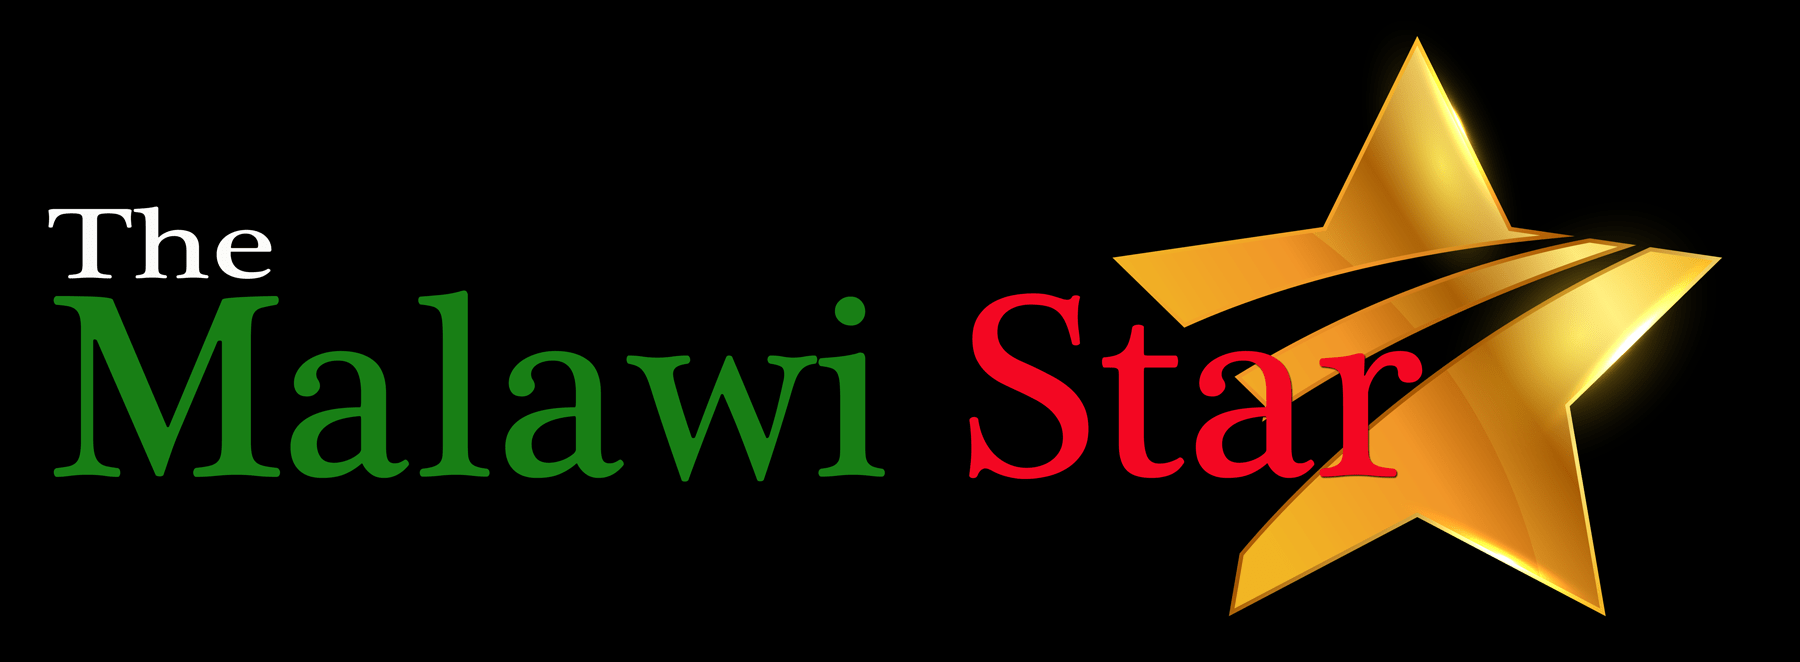 The Malawi Star